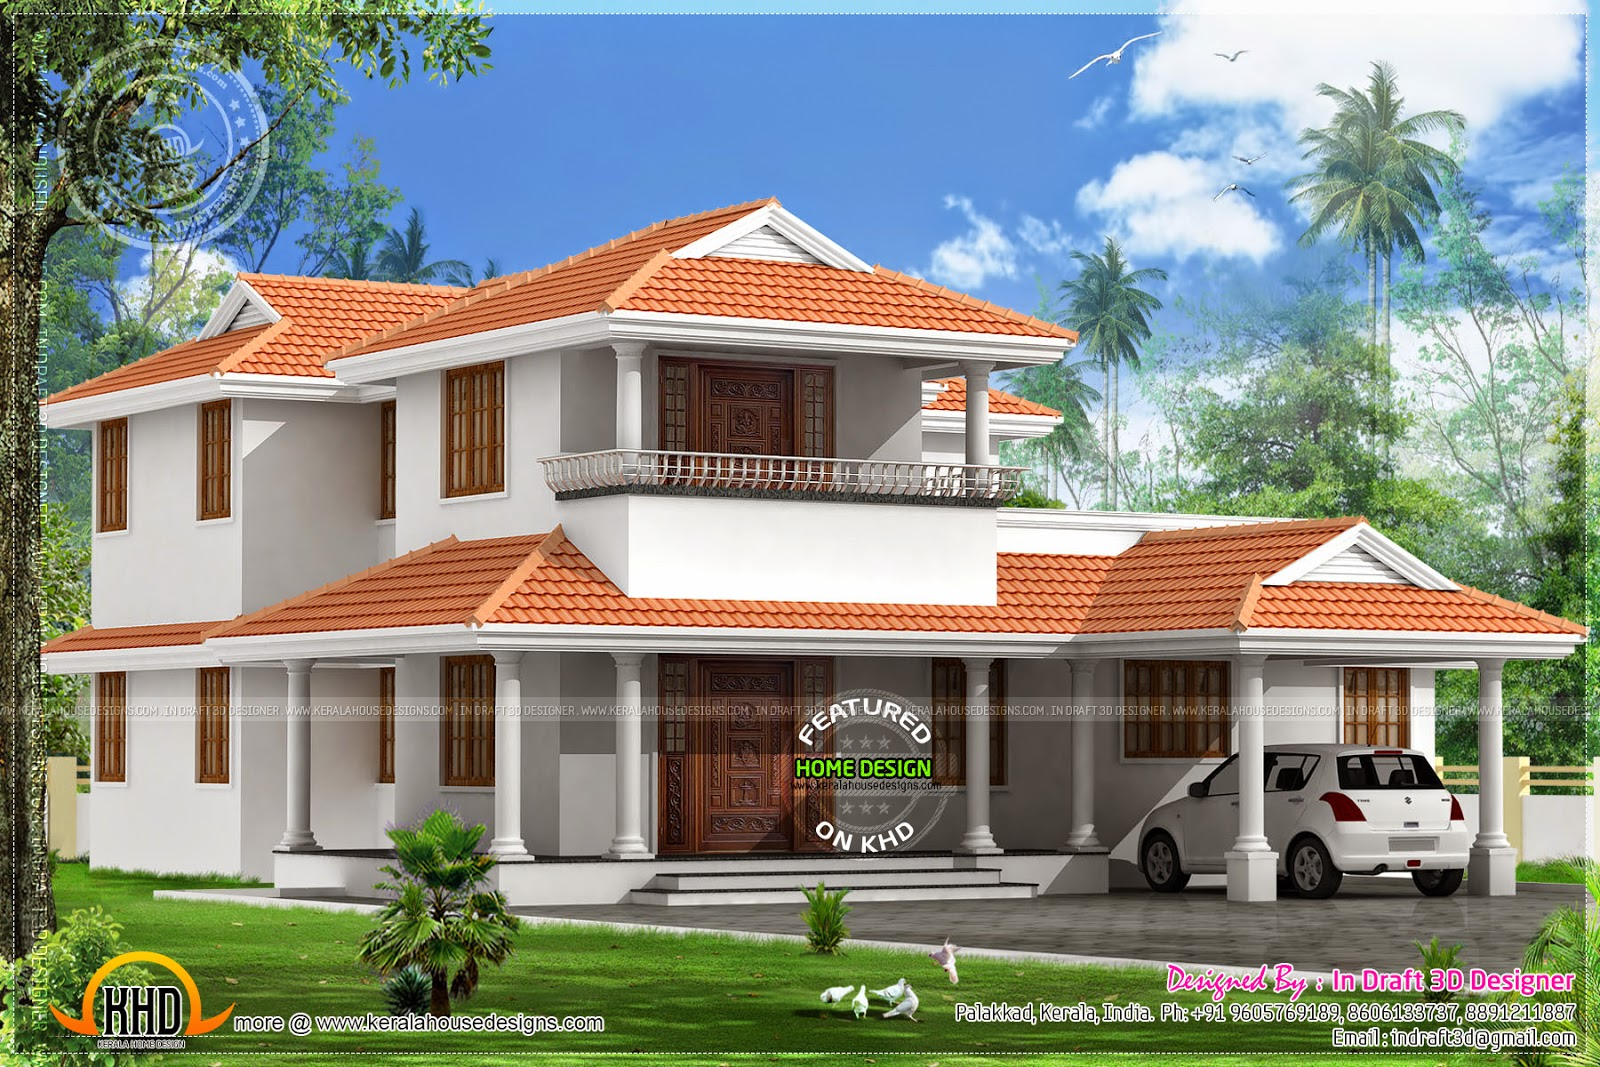 28 june 2014 kerala home design june 2014 kerala for Kerala house plans 2014